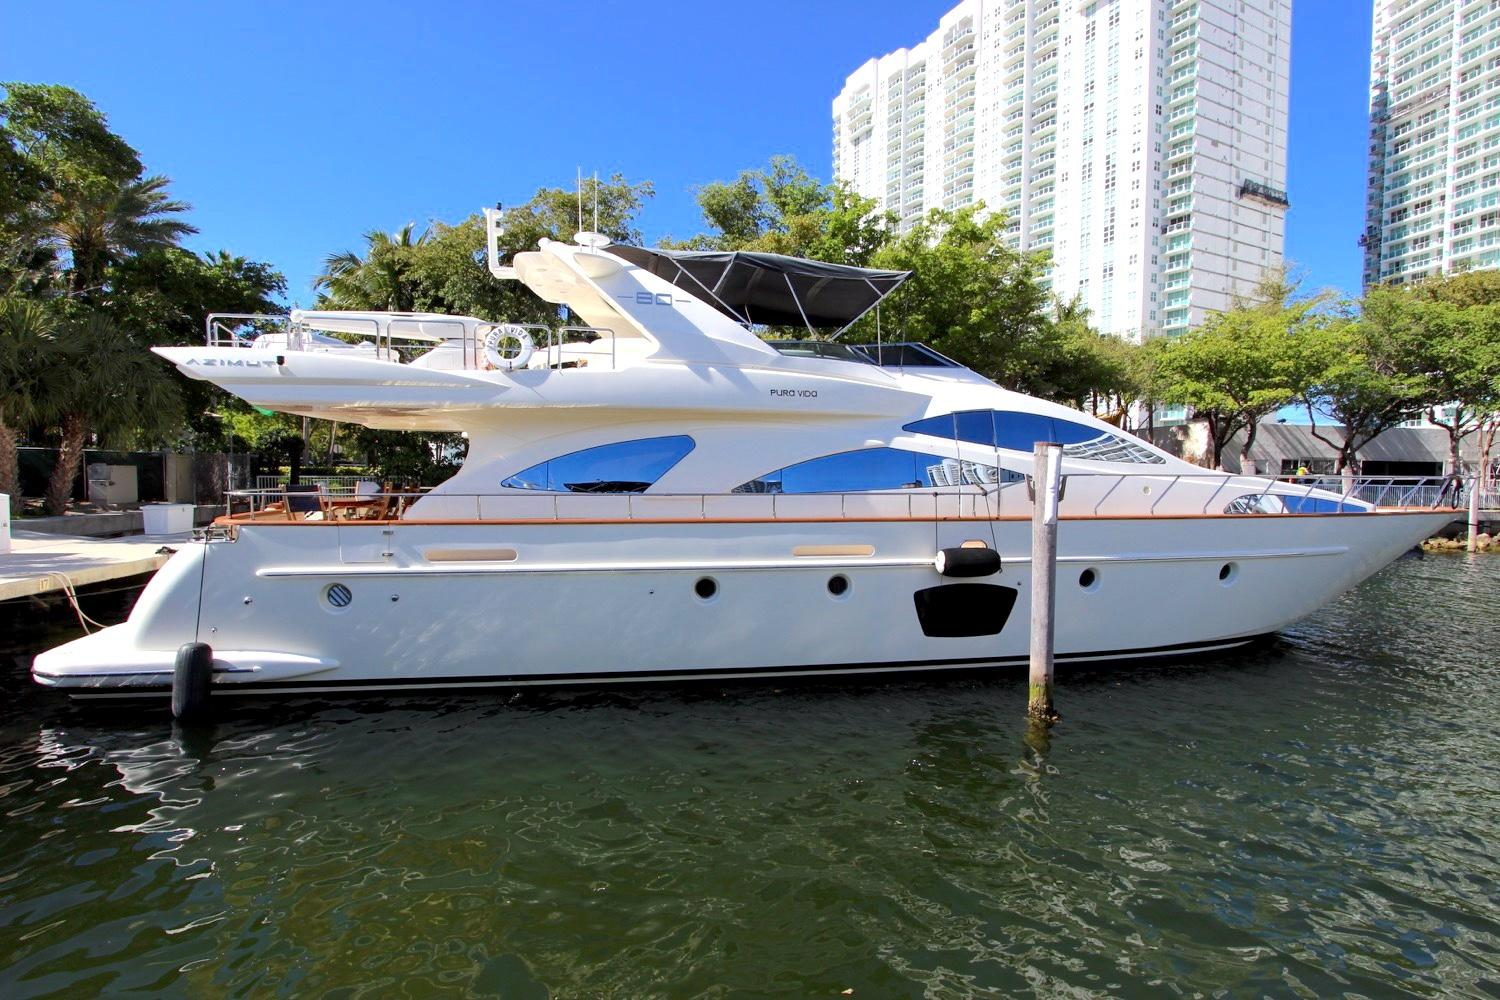 2008 Azimut 80 Flybride for sale in Aventura